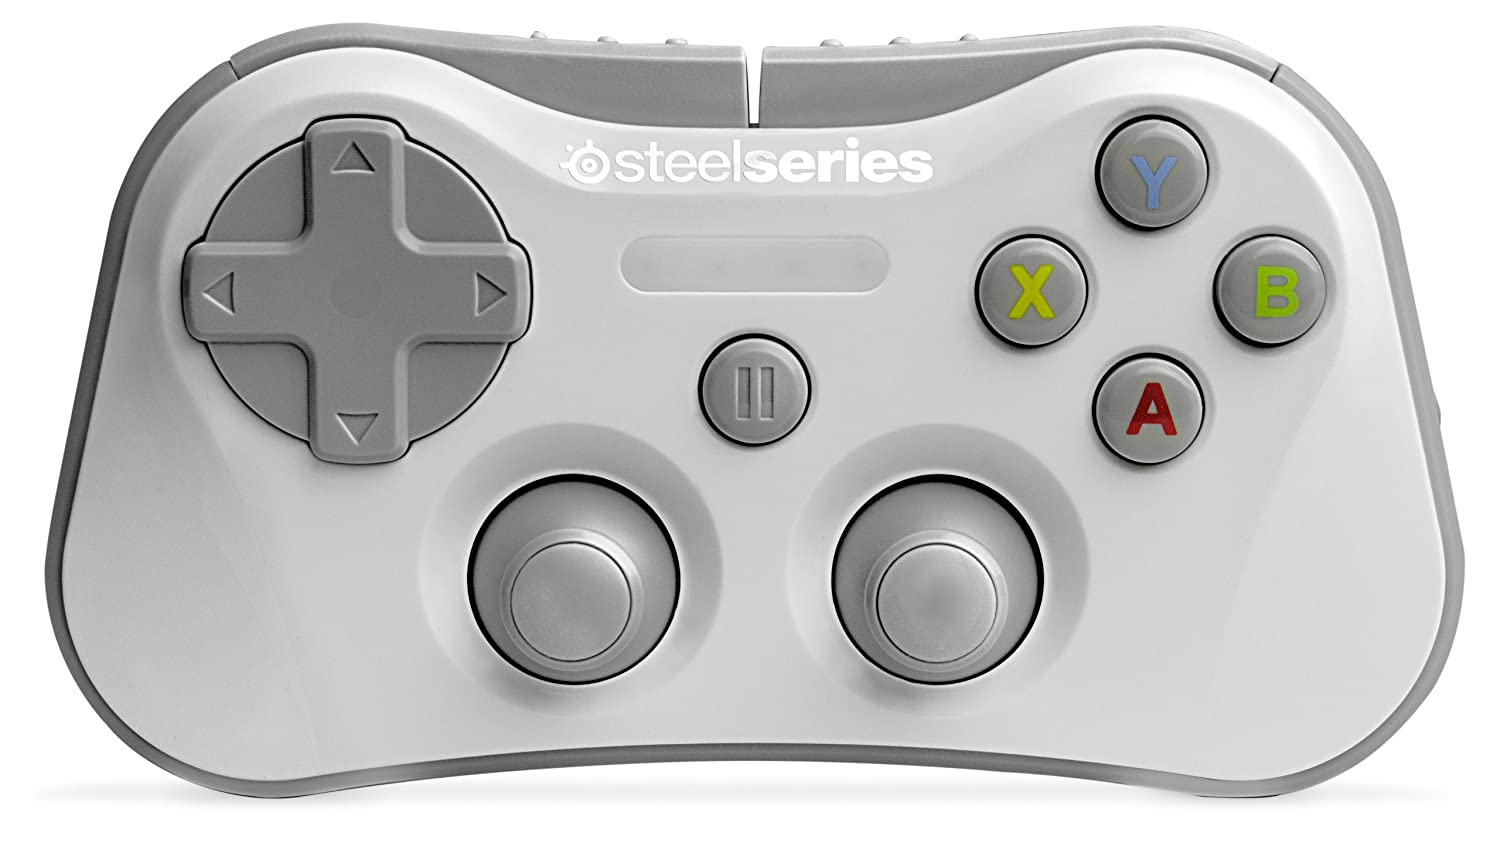 SteelSeries Stratus Wireless Gaming Controller for iPhone, iPad and iPod Touch, White 69017